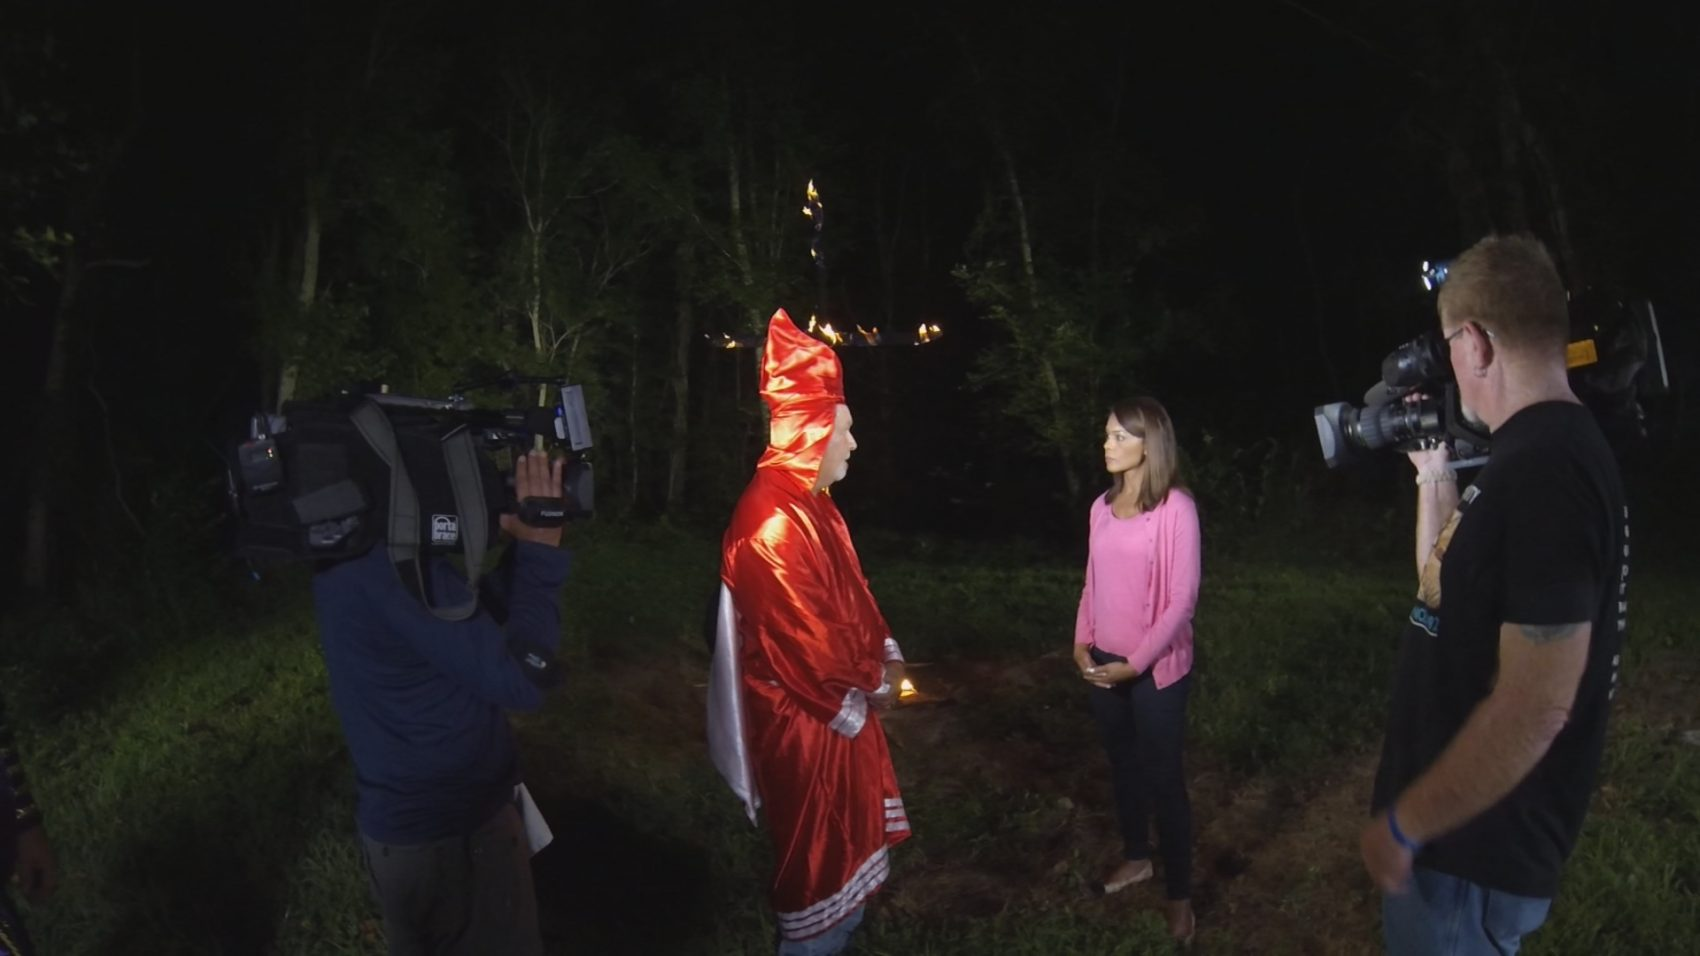 Univision's Ilia Calderón interviewing Christopher Barker, imperial wizard of the Loyal White Knights of the Ku Klux Klan, in North Carolina. (Courtesy Univision)